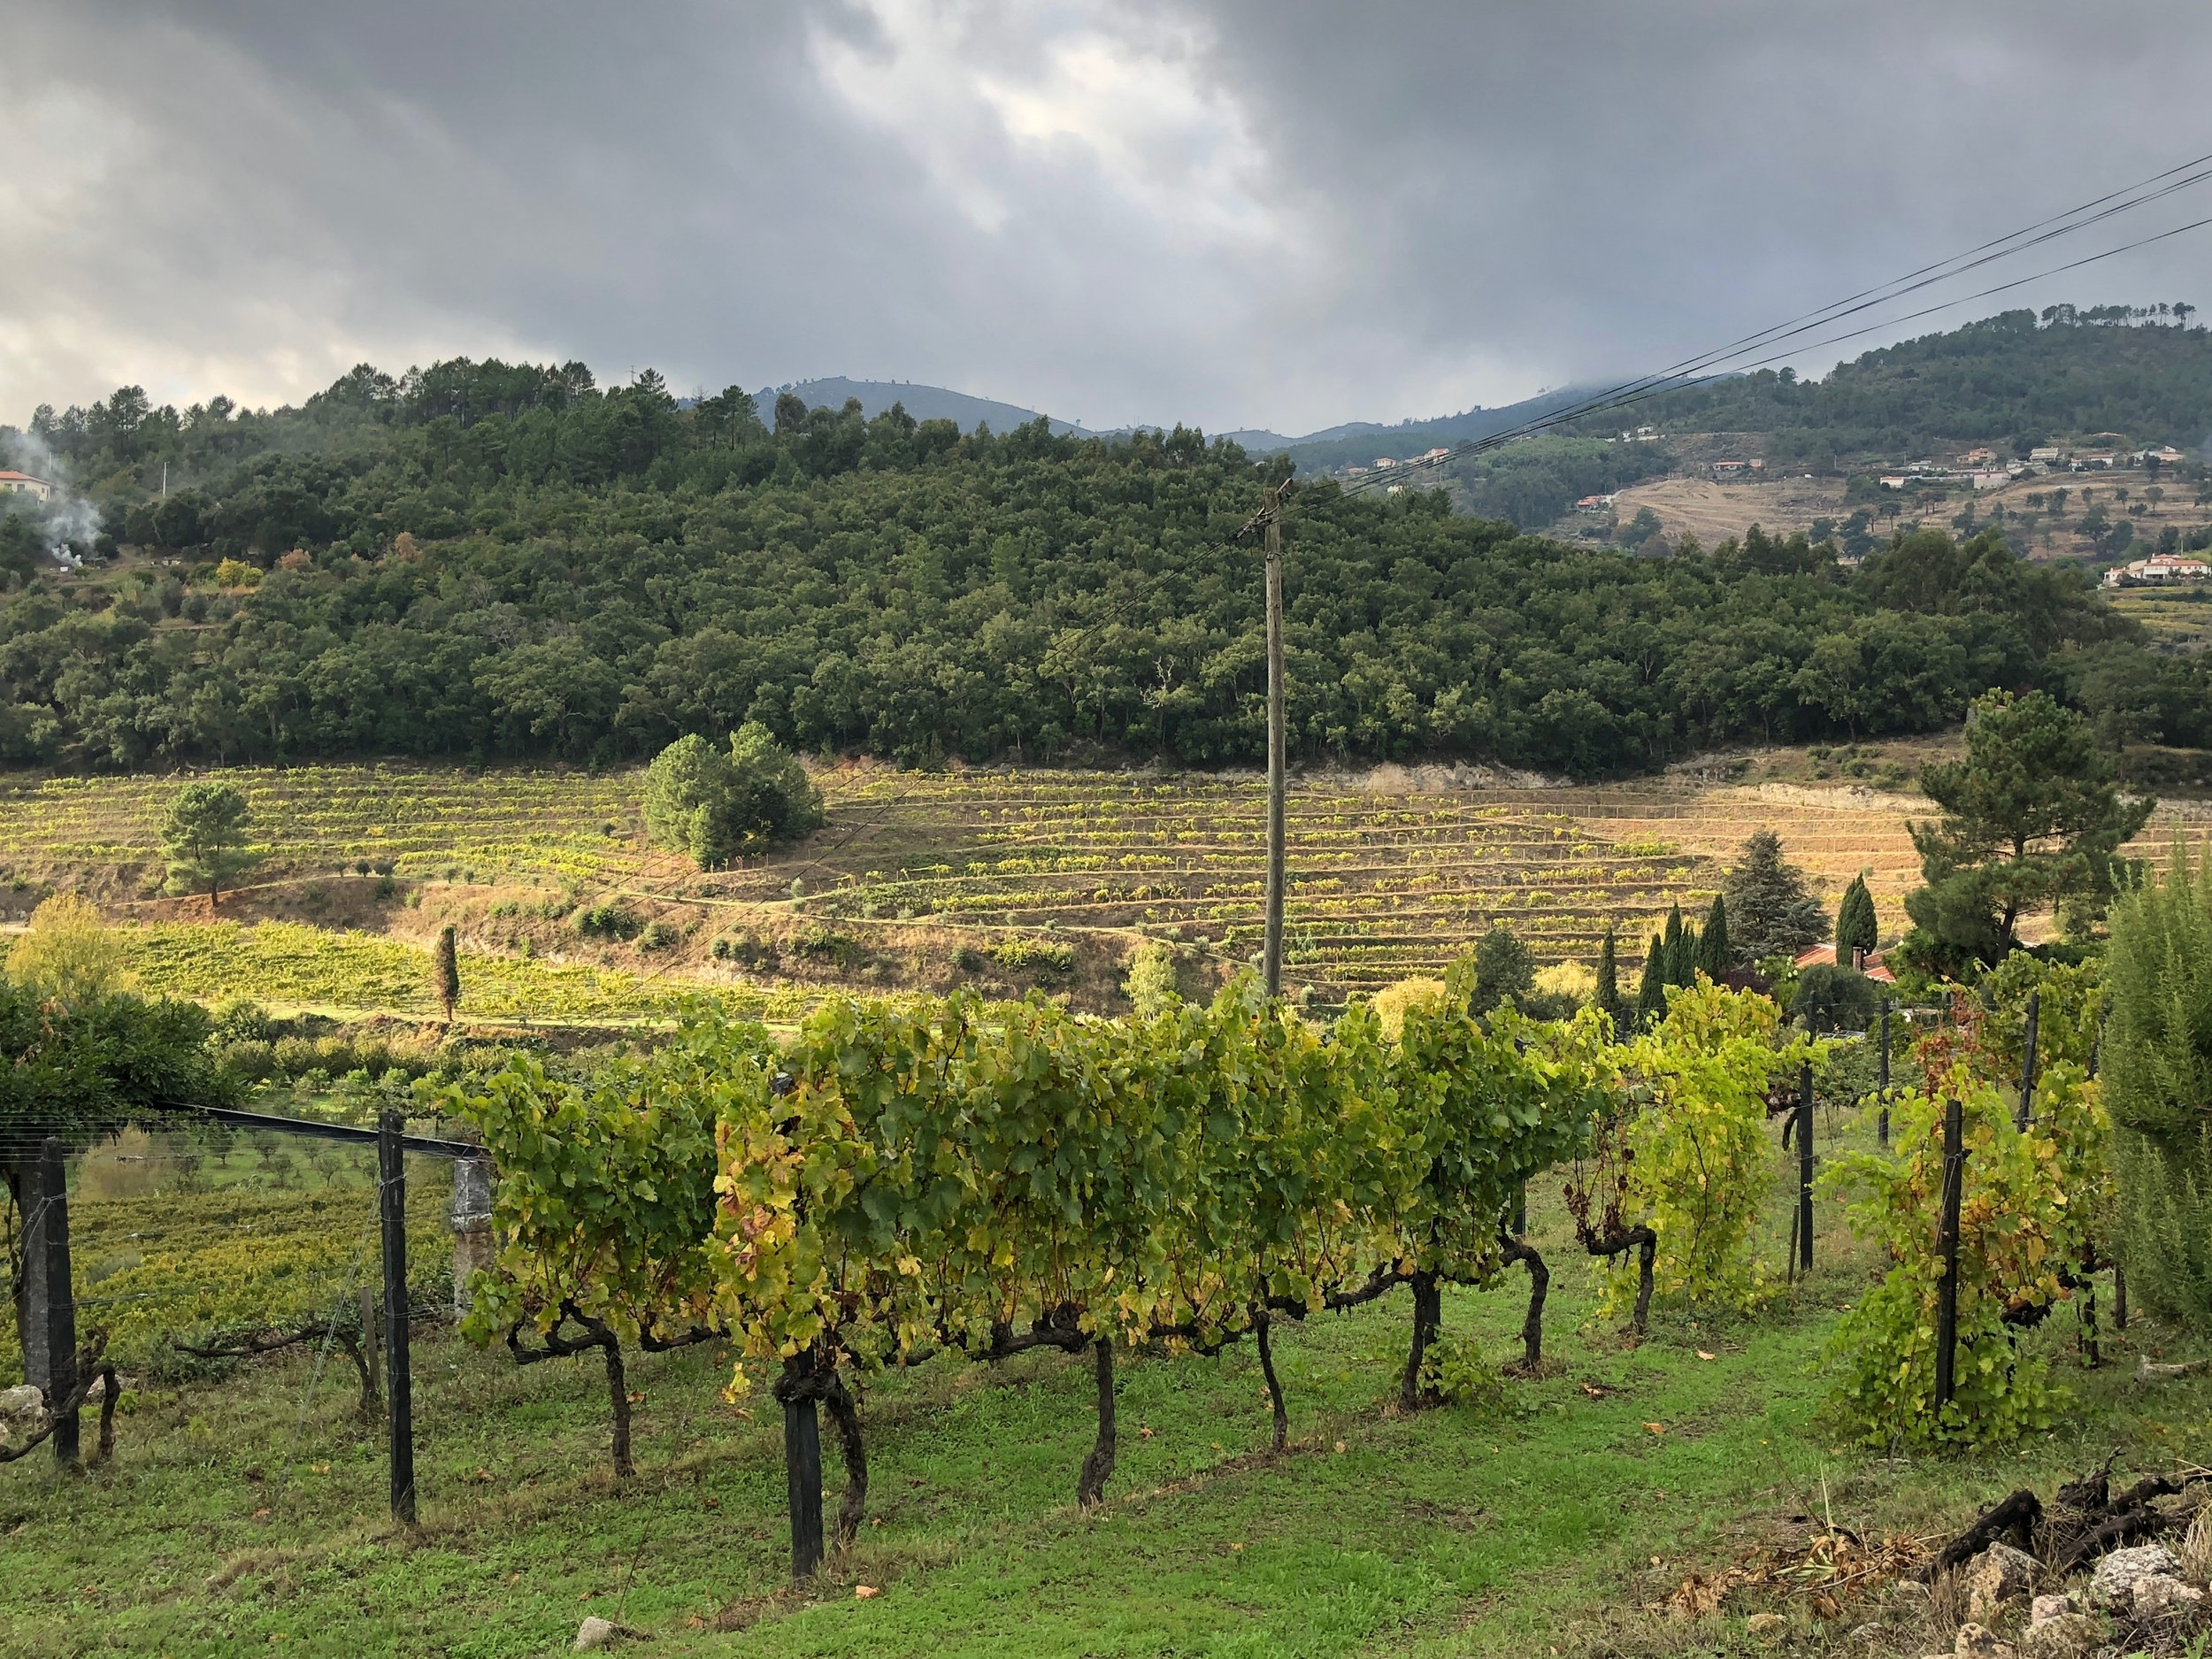 Vineyards in the Douro Valley.